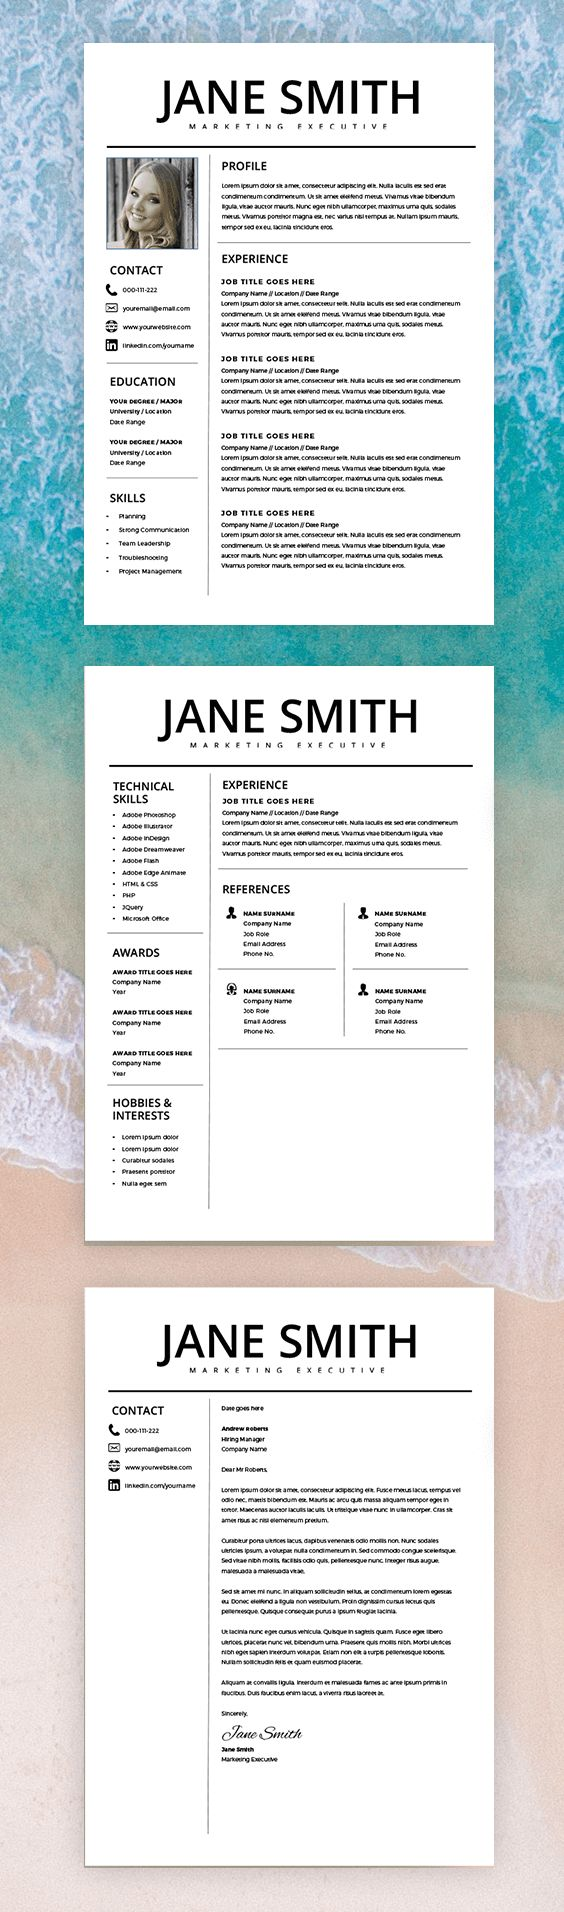 Best Curriculum Vitae Images On   Resume Design